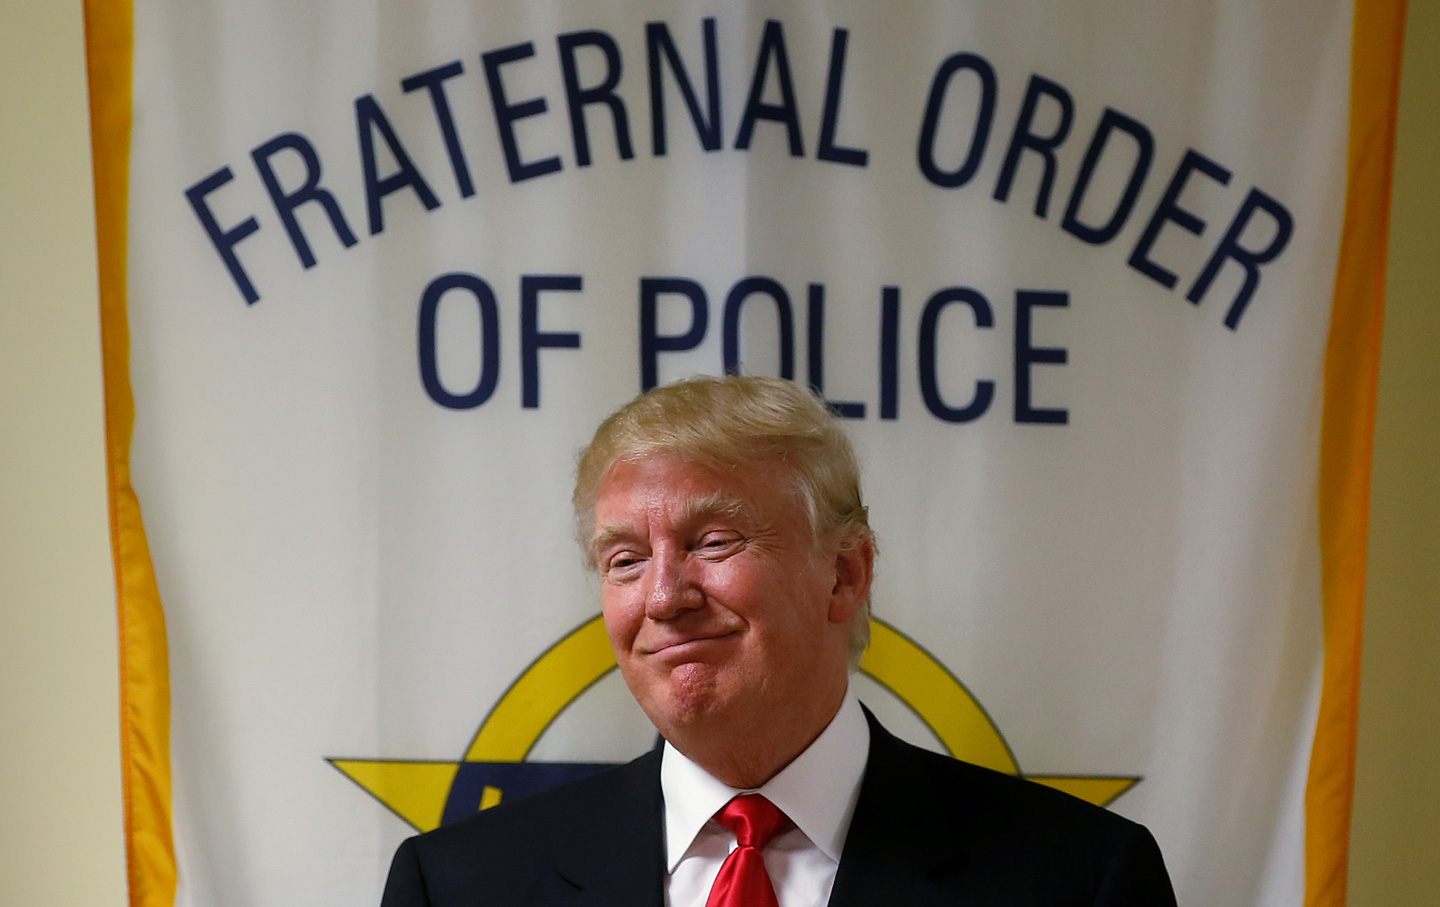 https://www.thenation.com/wp-content/uploads/2017/10/Donald-Trump-Fraternal-Order-Police-rtr-img.jpg?scale=896&compress=80